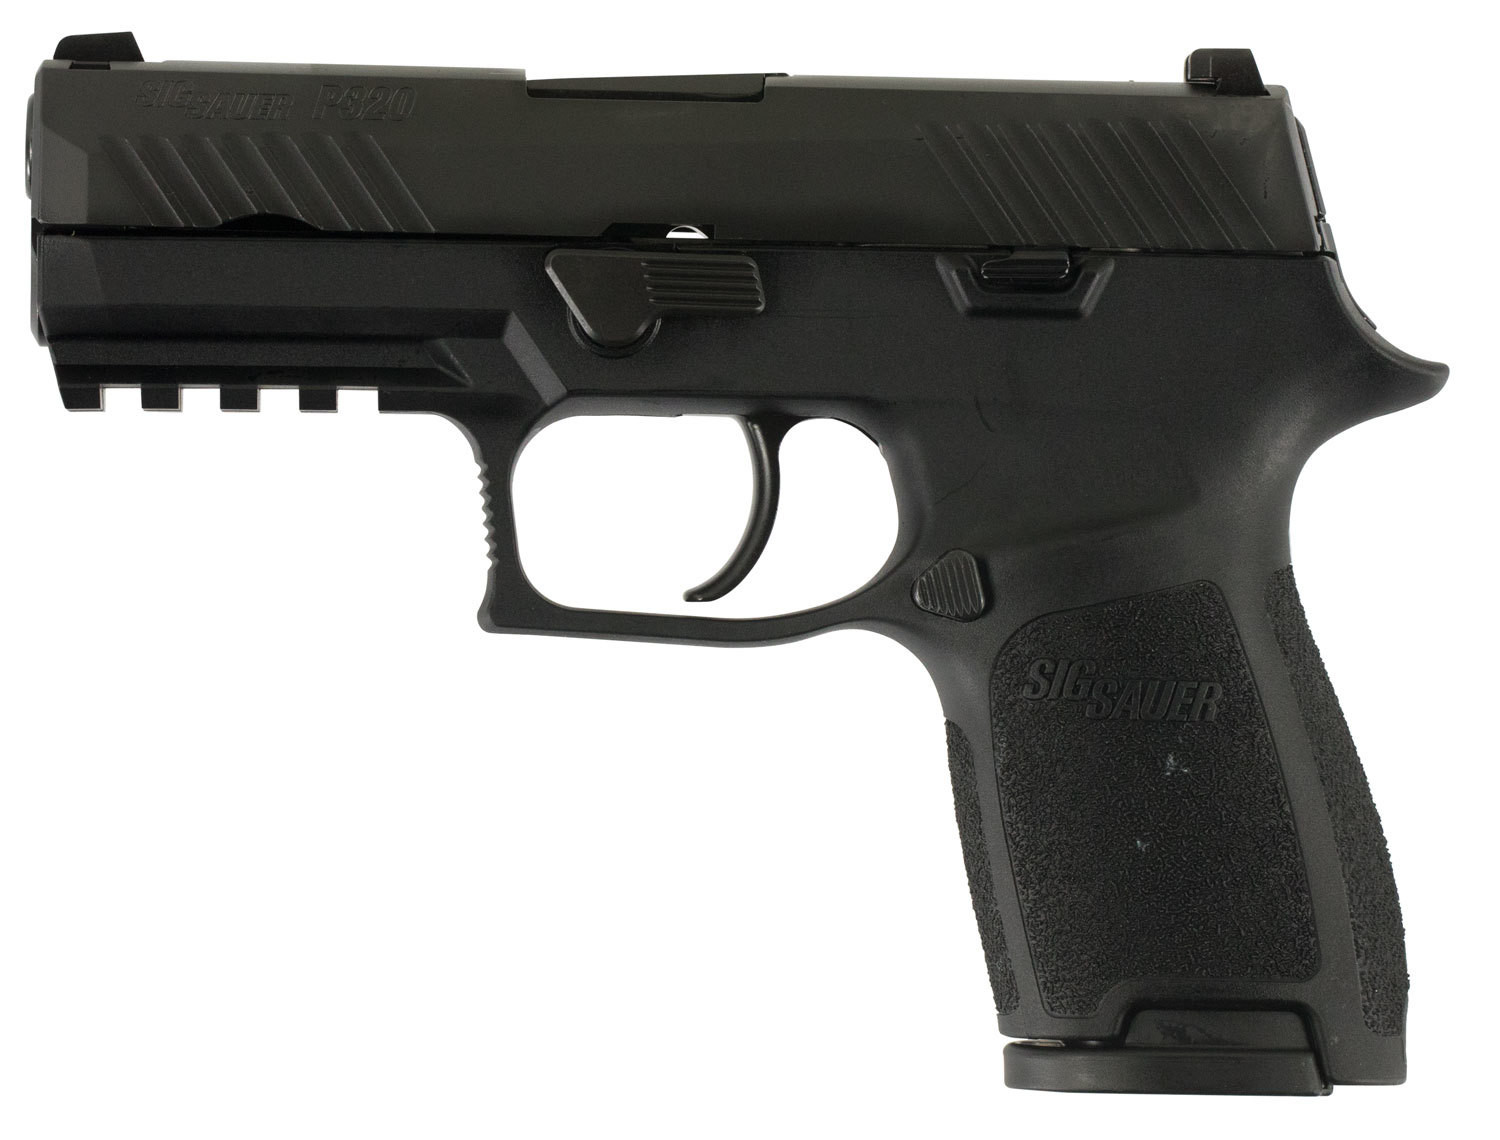 "80% Sig Sauer - P320 Compact Double 9mm Luger 3.9"" 10+1 - 2 Mags - Black Polymer Grip - Black Nitron Stainless Steel"